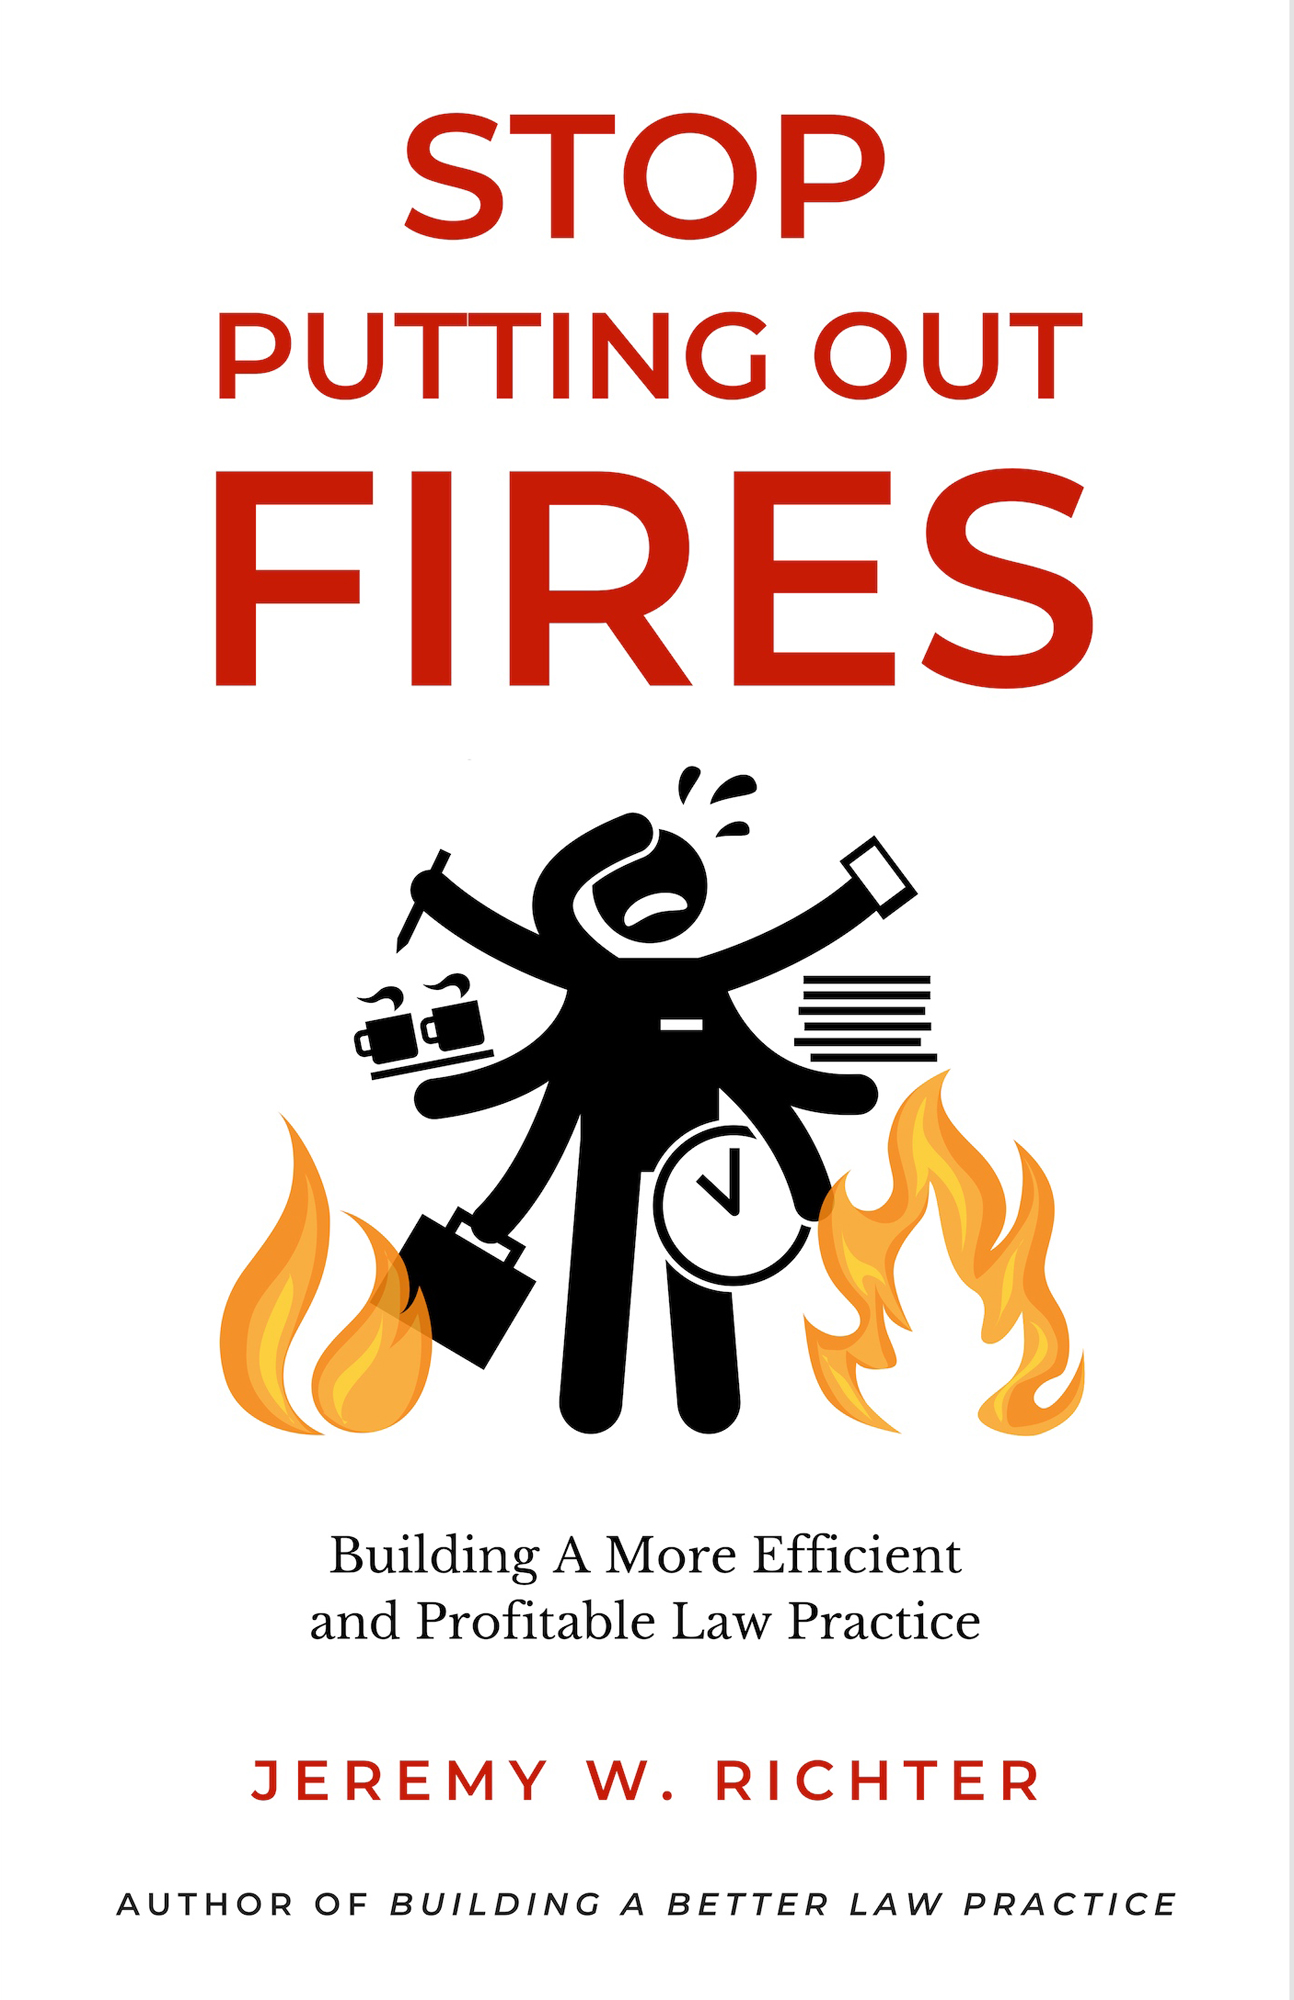 Jeremy W. Richter | Stop Putting Out Fires